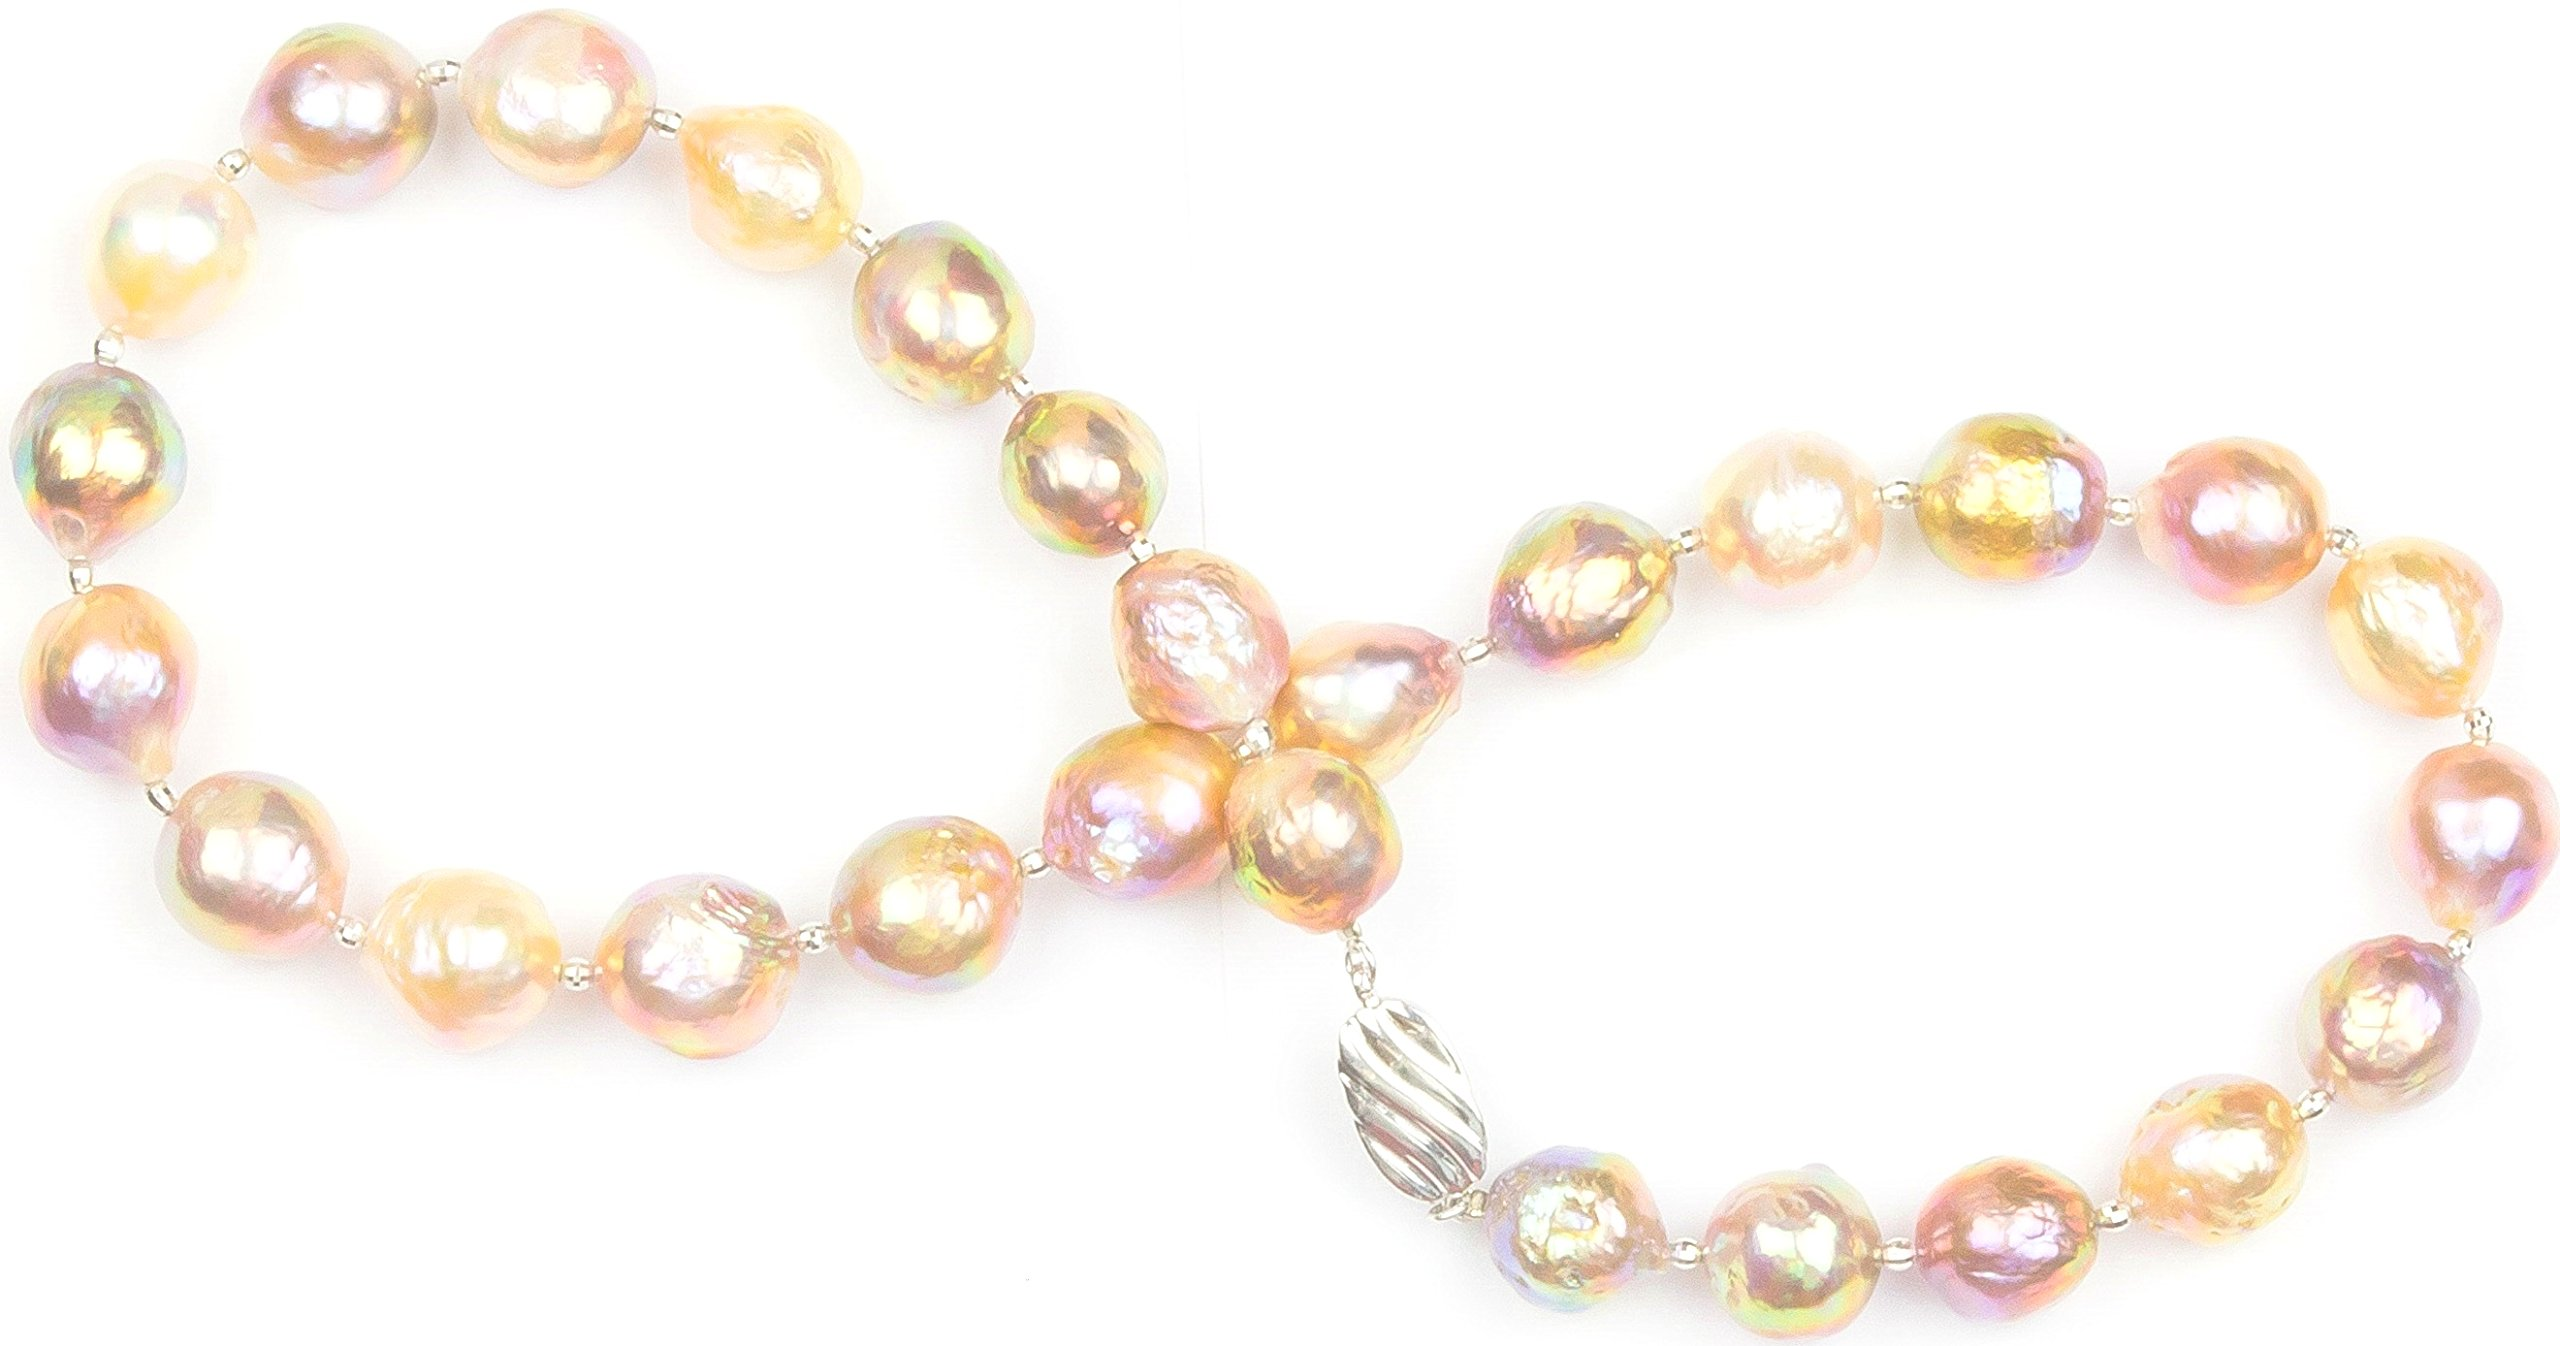 HinsonGayle AAA GEM 12-13mm Rainbow Fireball Baroque Freshwater Cultured Pearl Necklace Silver